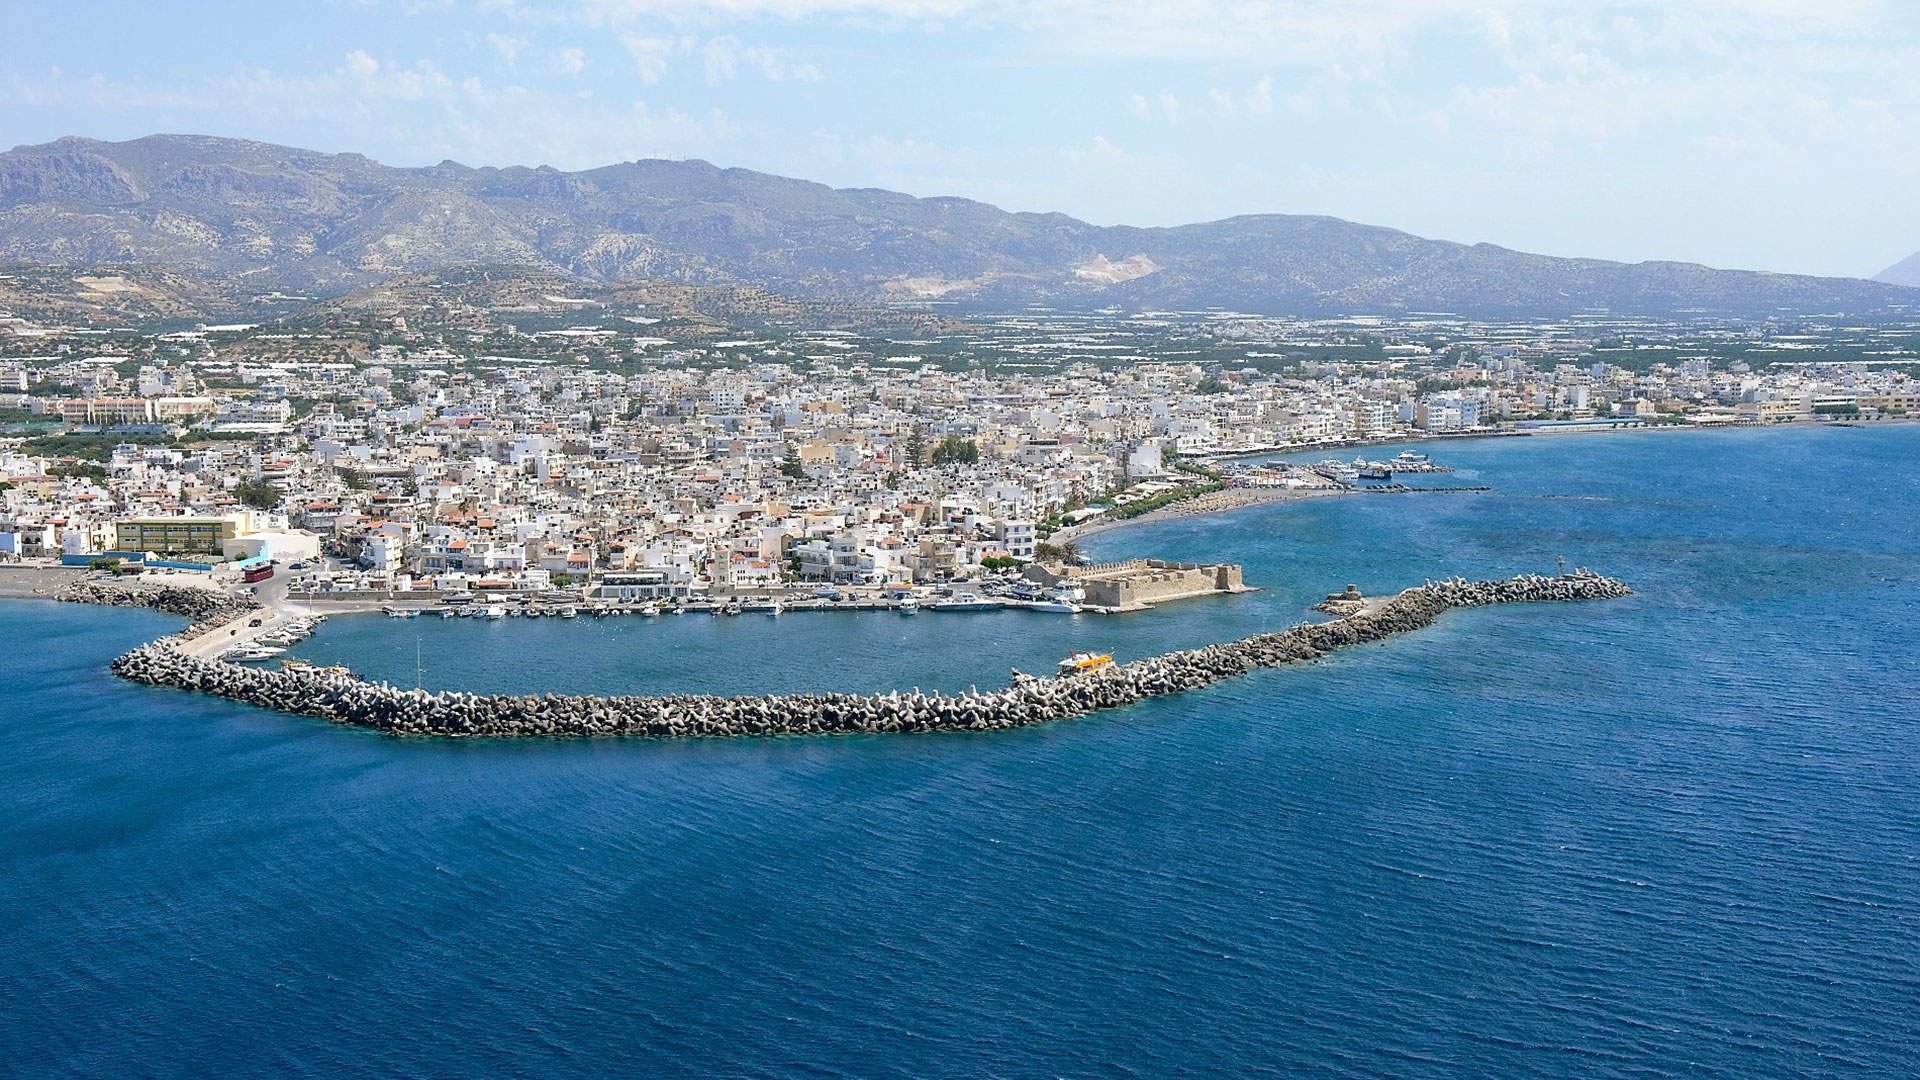 EXPERIENCE HISTORY CULTURE & NATURE OF IERAPETRA